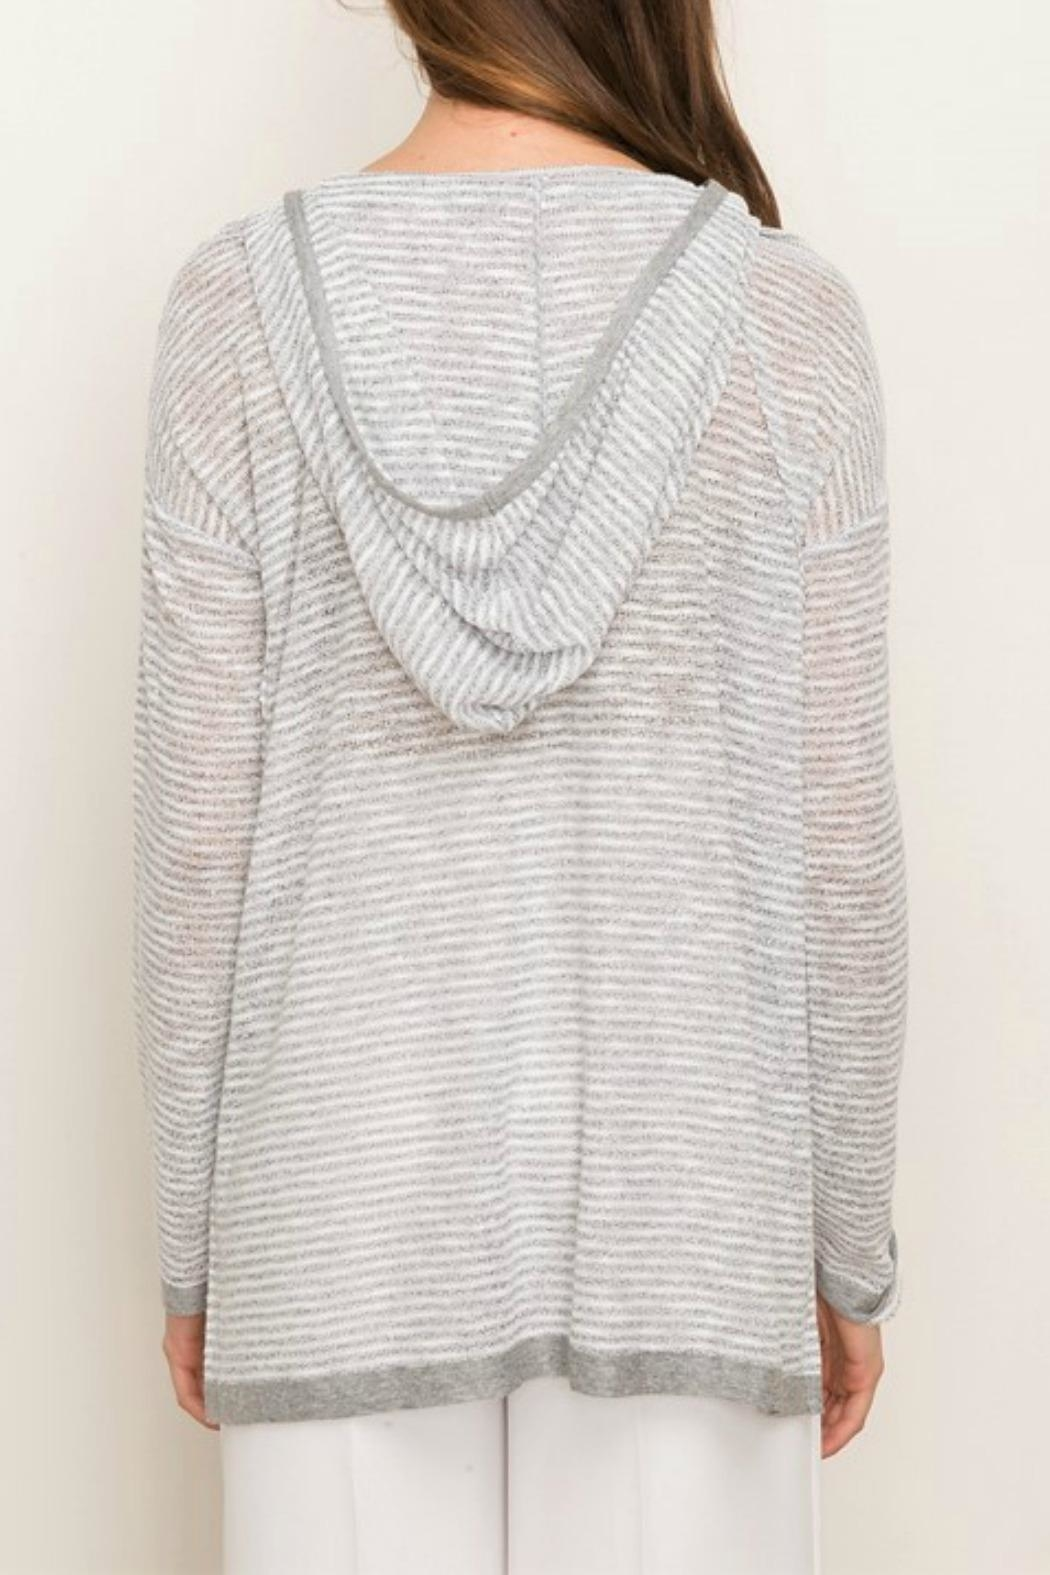 Mystree Lace-Up Hooded Pullover - Front Full Image